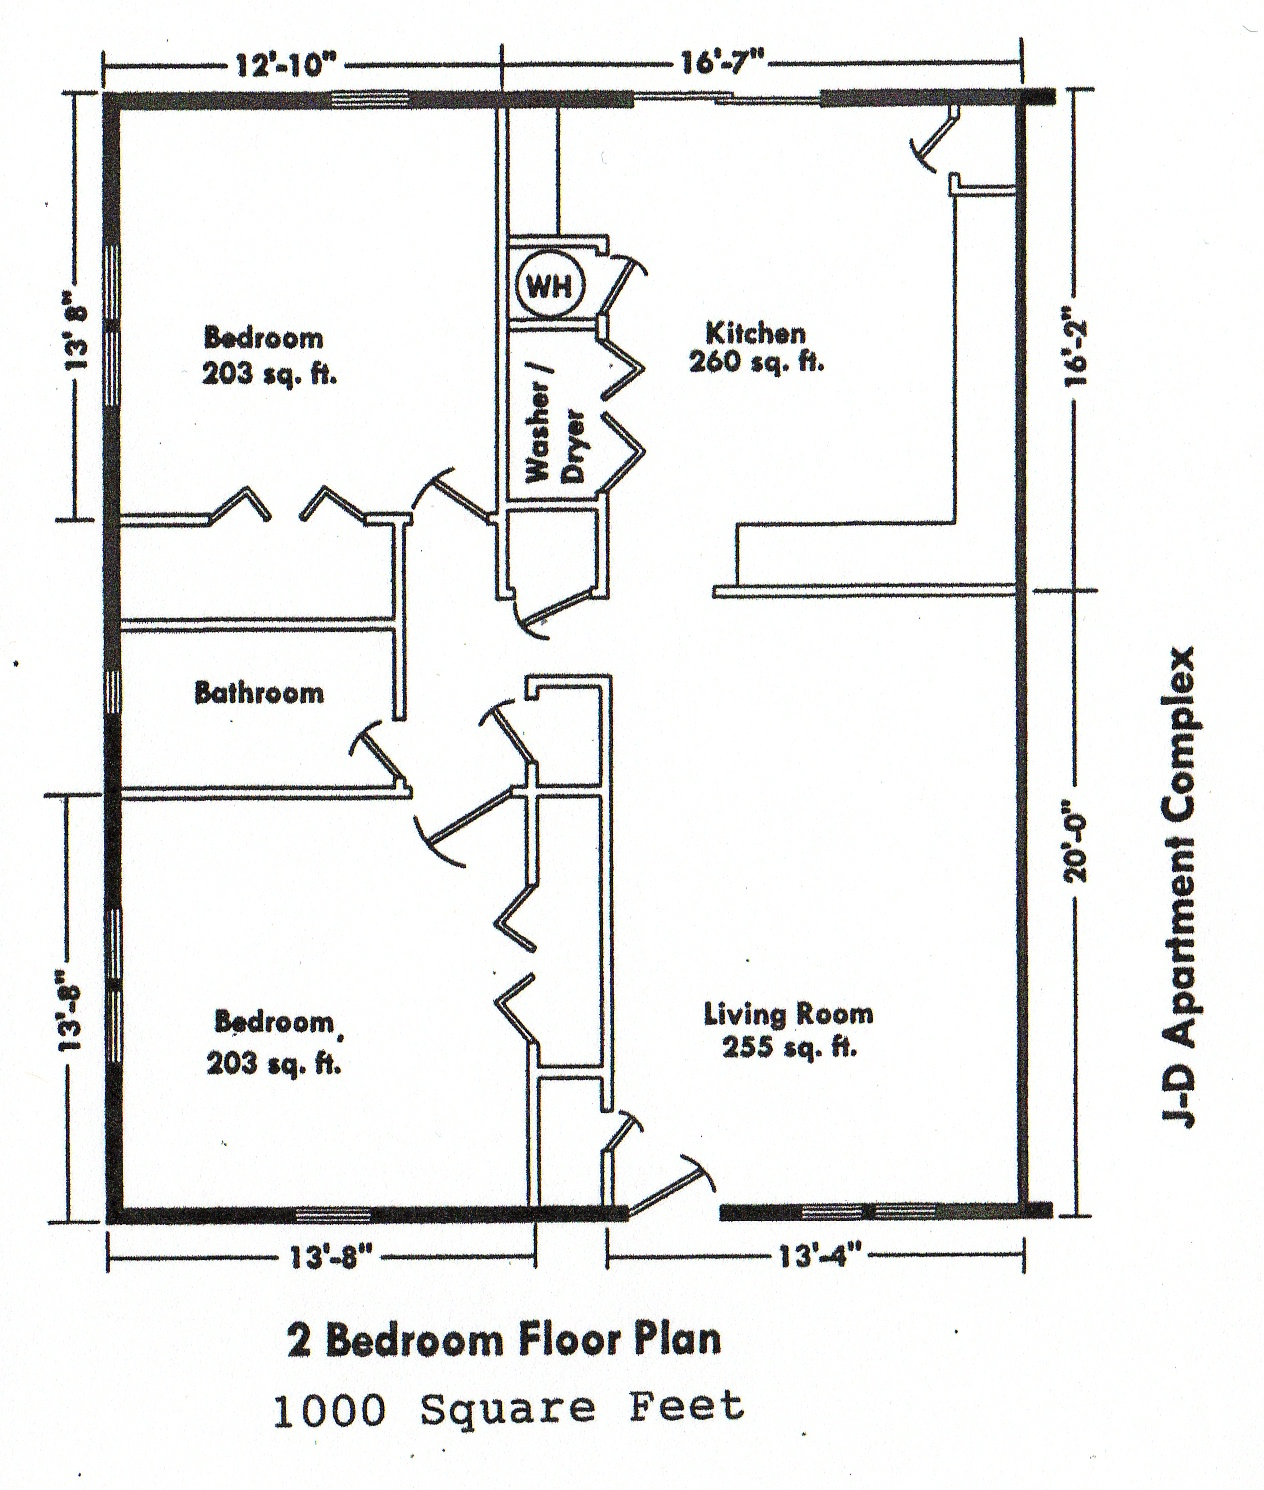 Bedroom floor plans over 5000 house plans for Sketch plan for 2 bedroom house